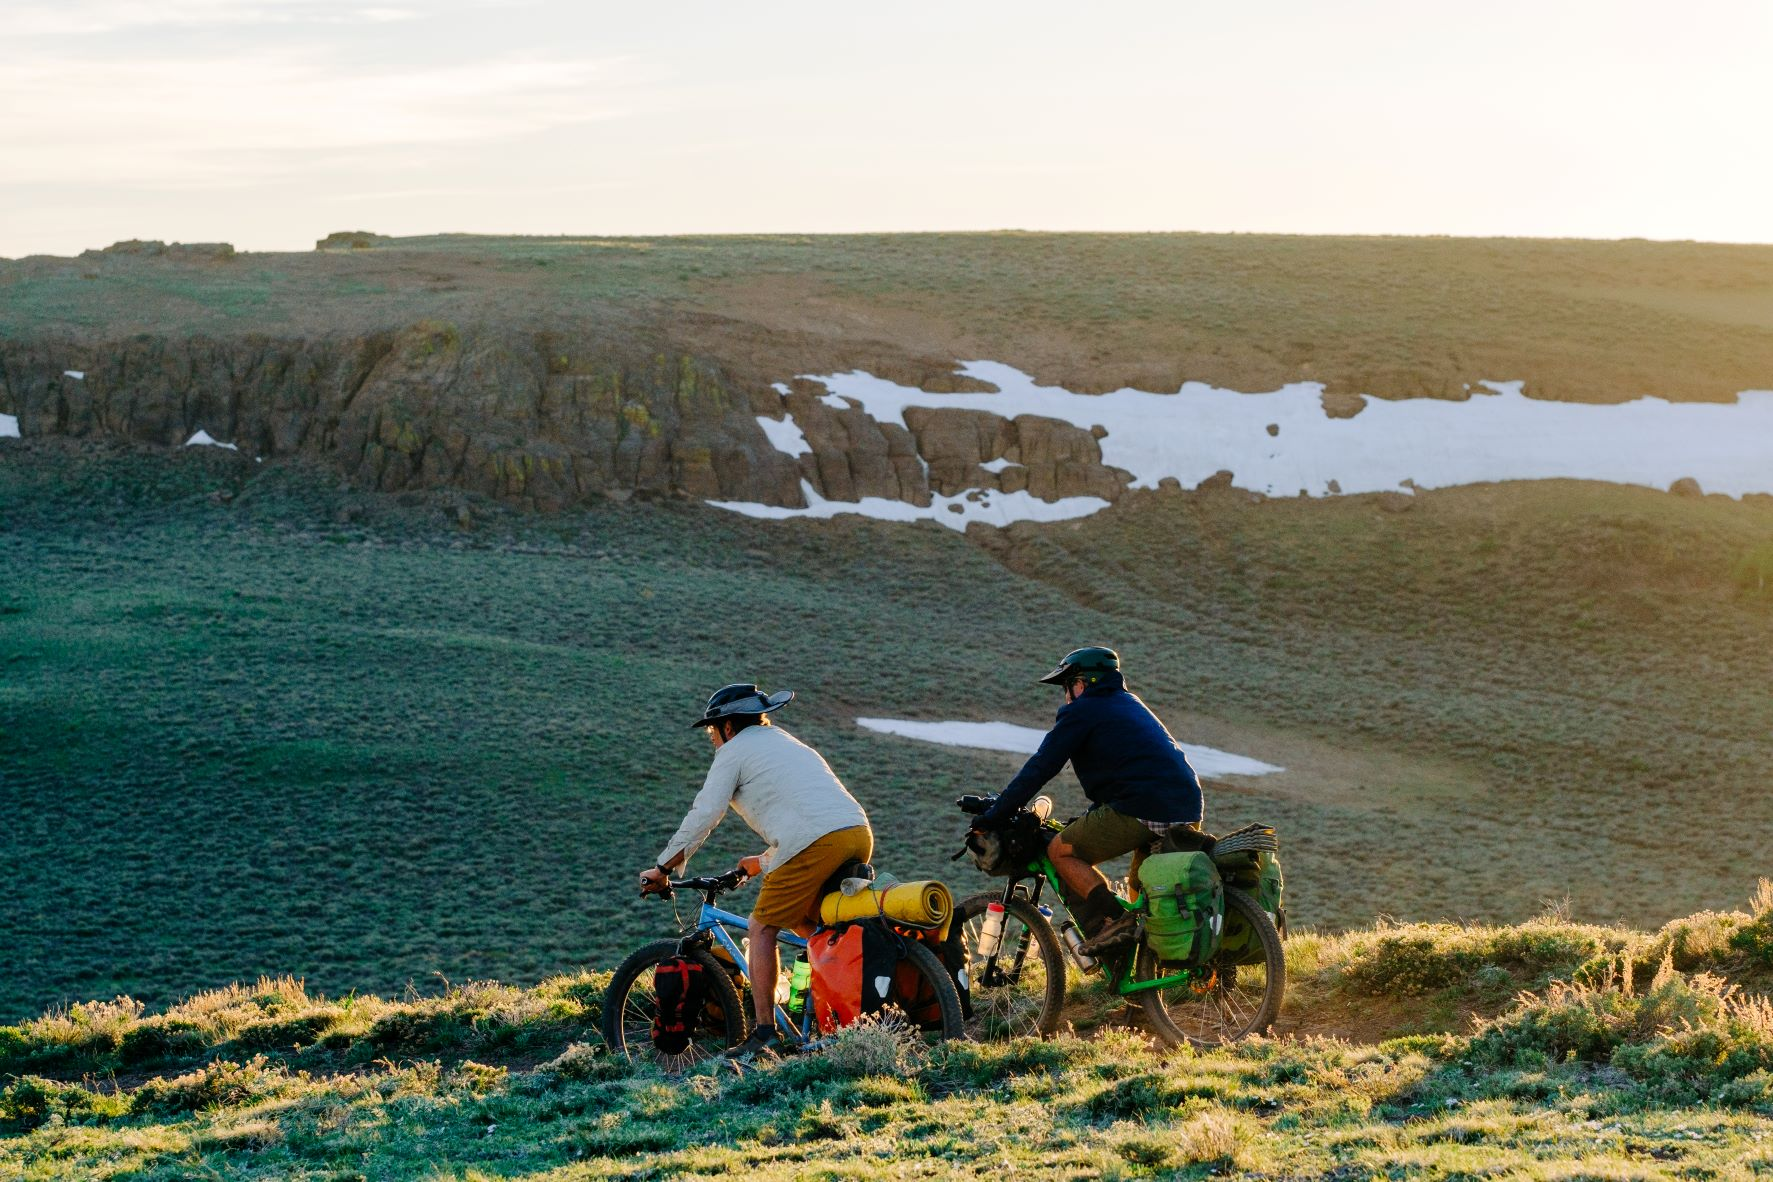 Two bikers along a dirt trail in te Trout Creek Mountains, with snow remnants on the shady rock cliffs in the distance.